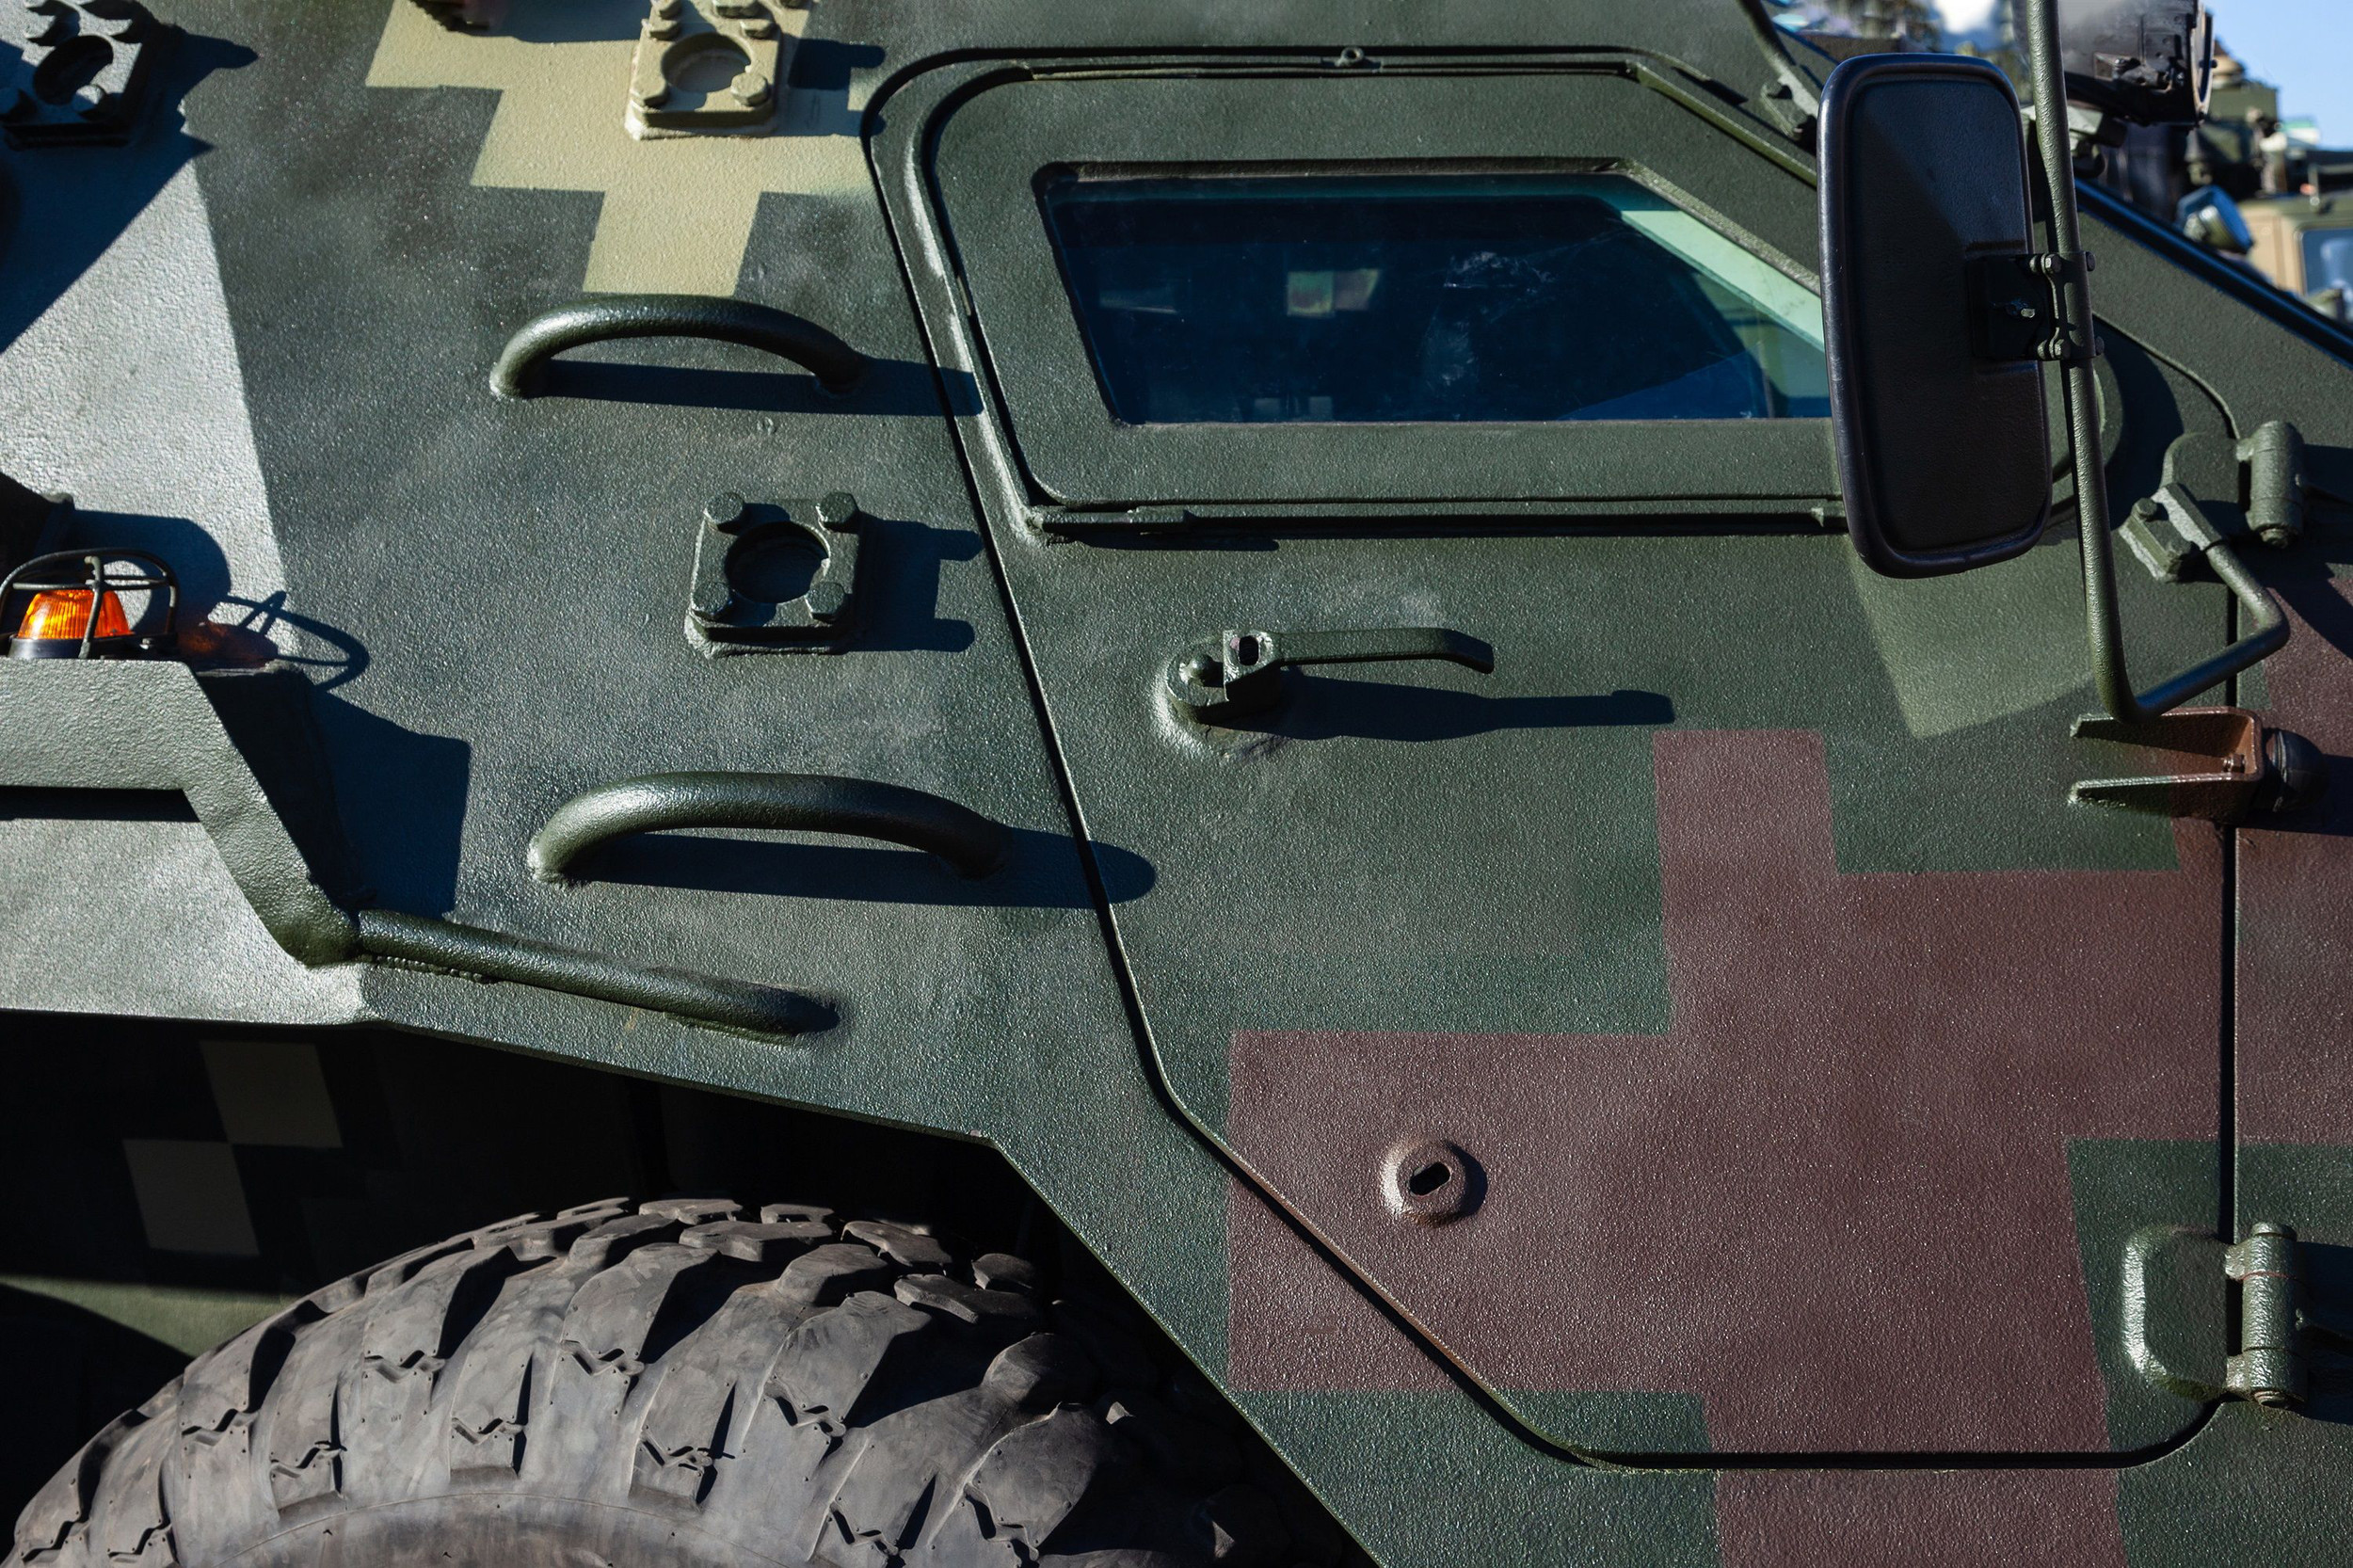 Soldier who took armored vehicle for joyride is found not guilty by reason of insanity